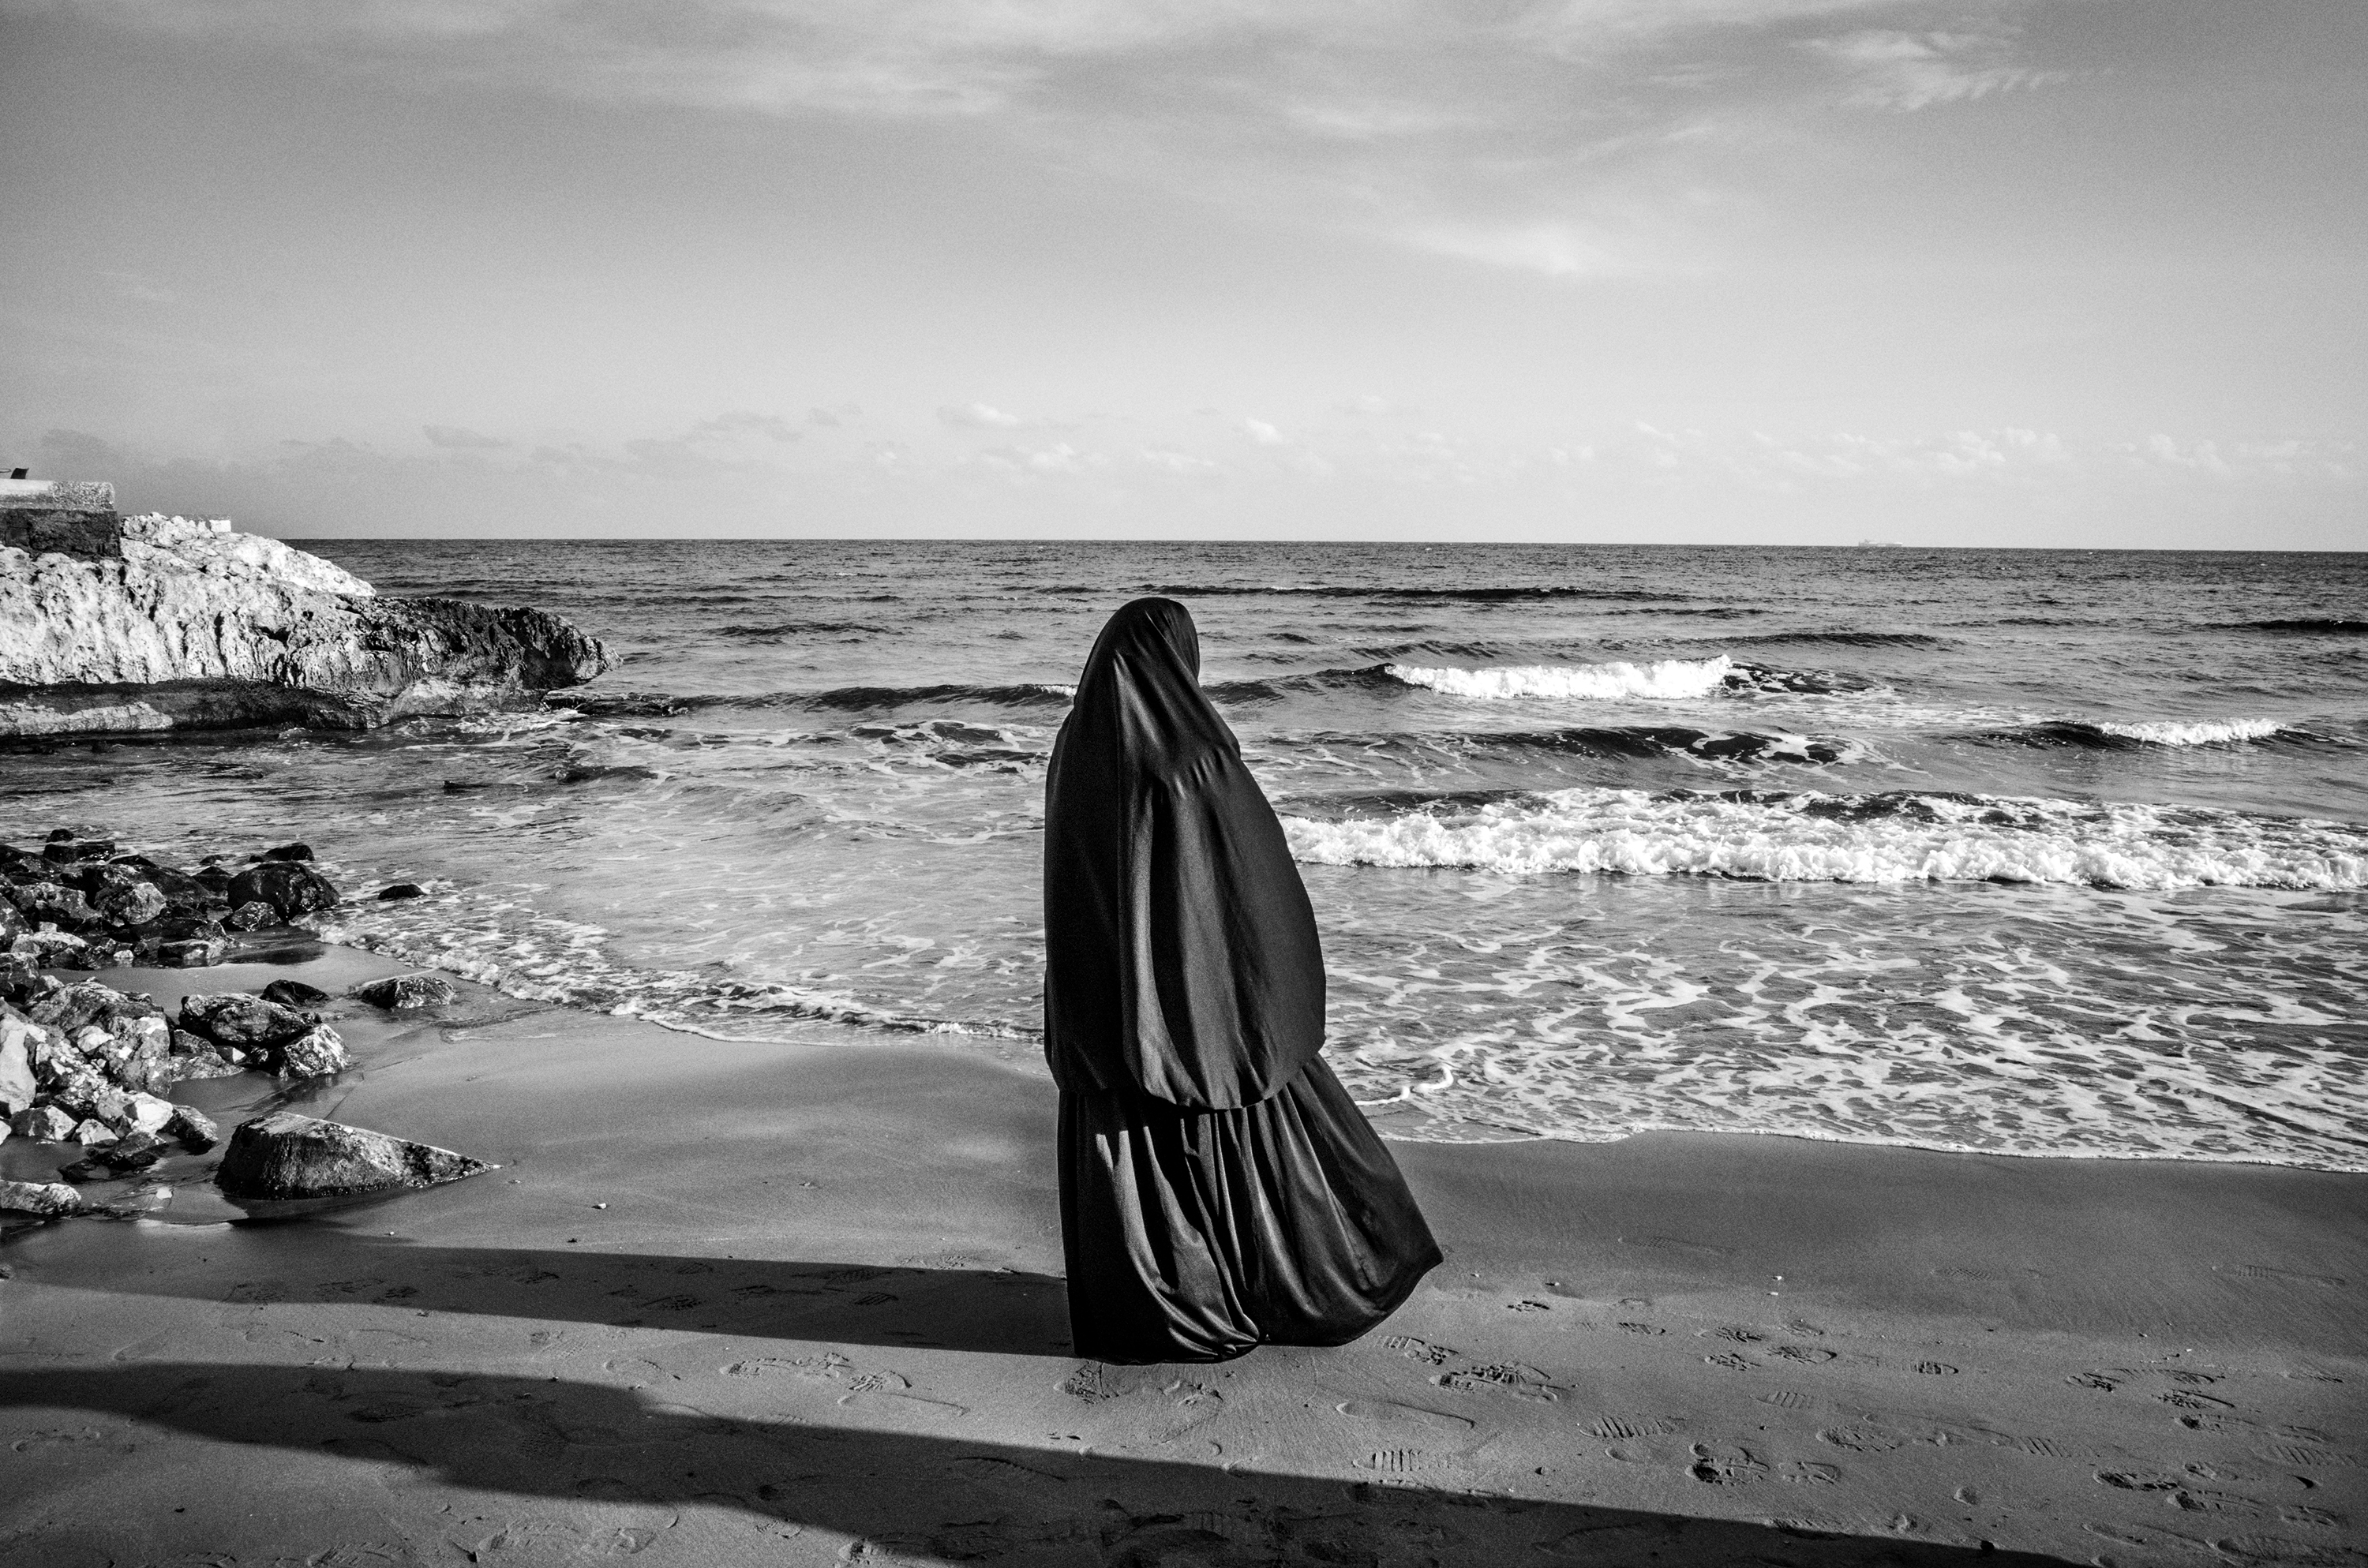 Photographing the world's refugee crisis: interview with Fabio Bucciarelli